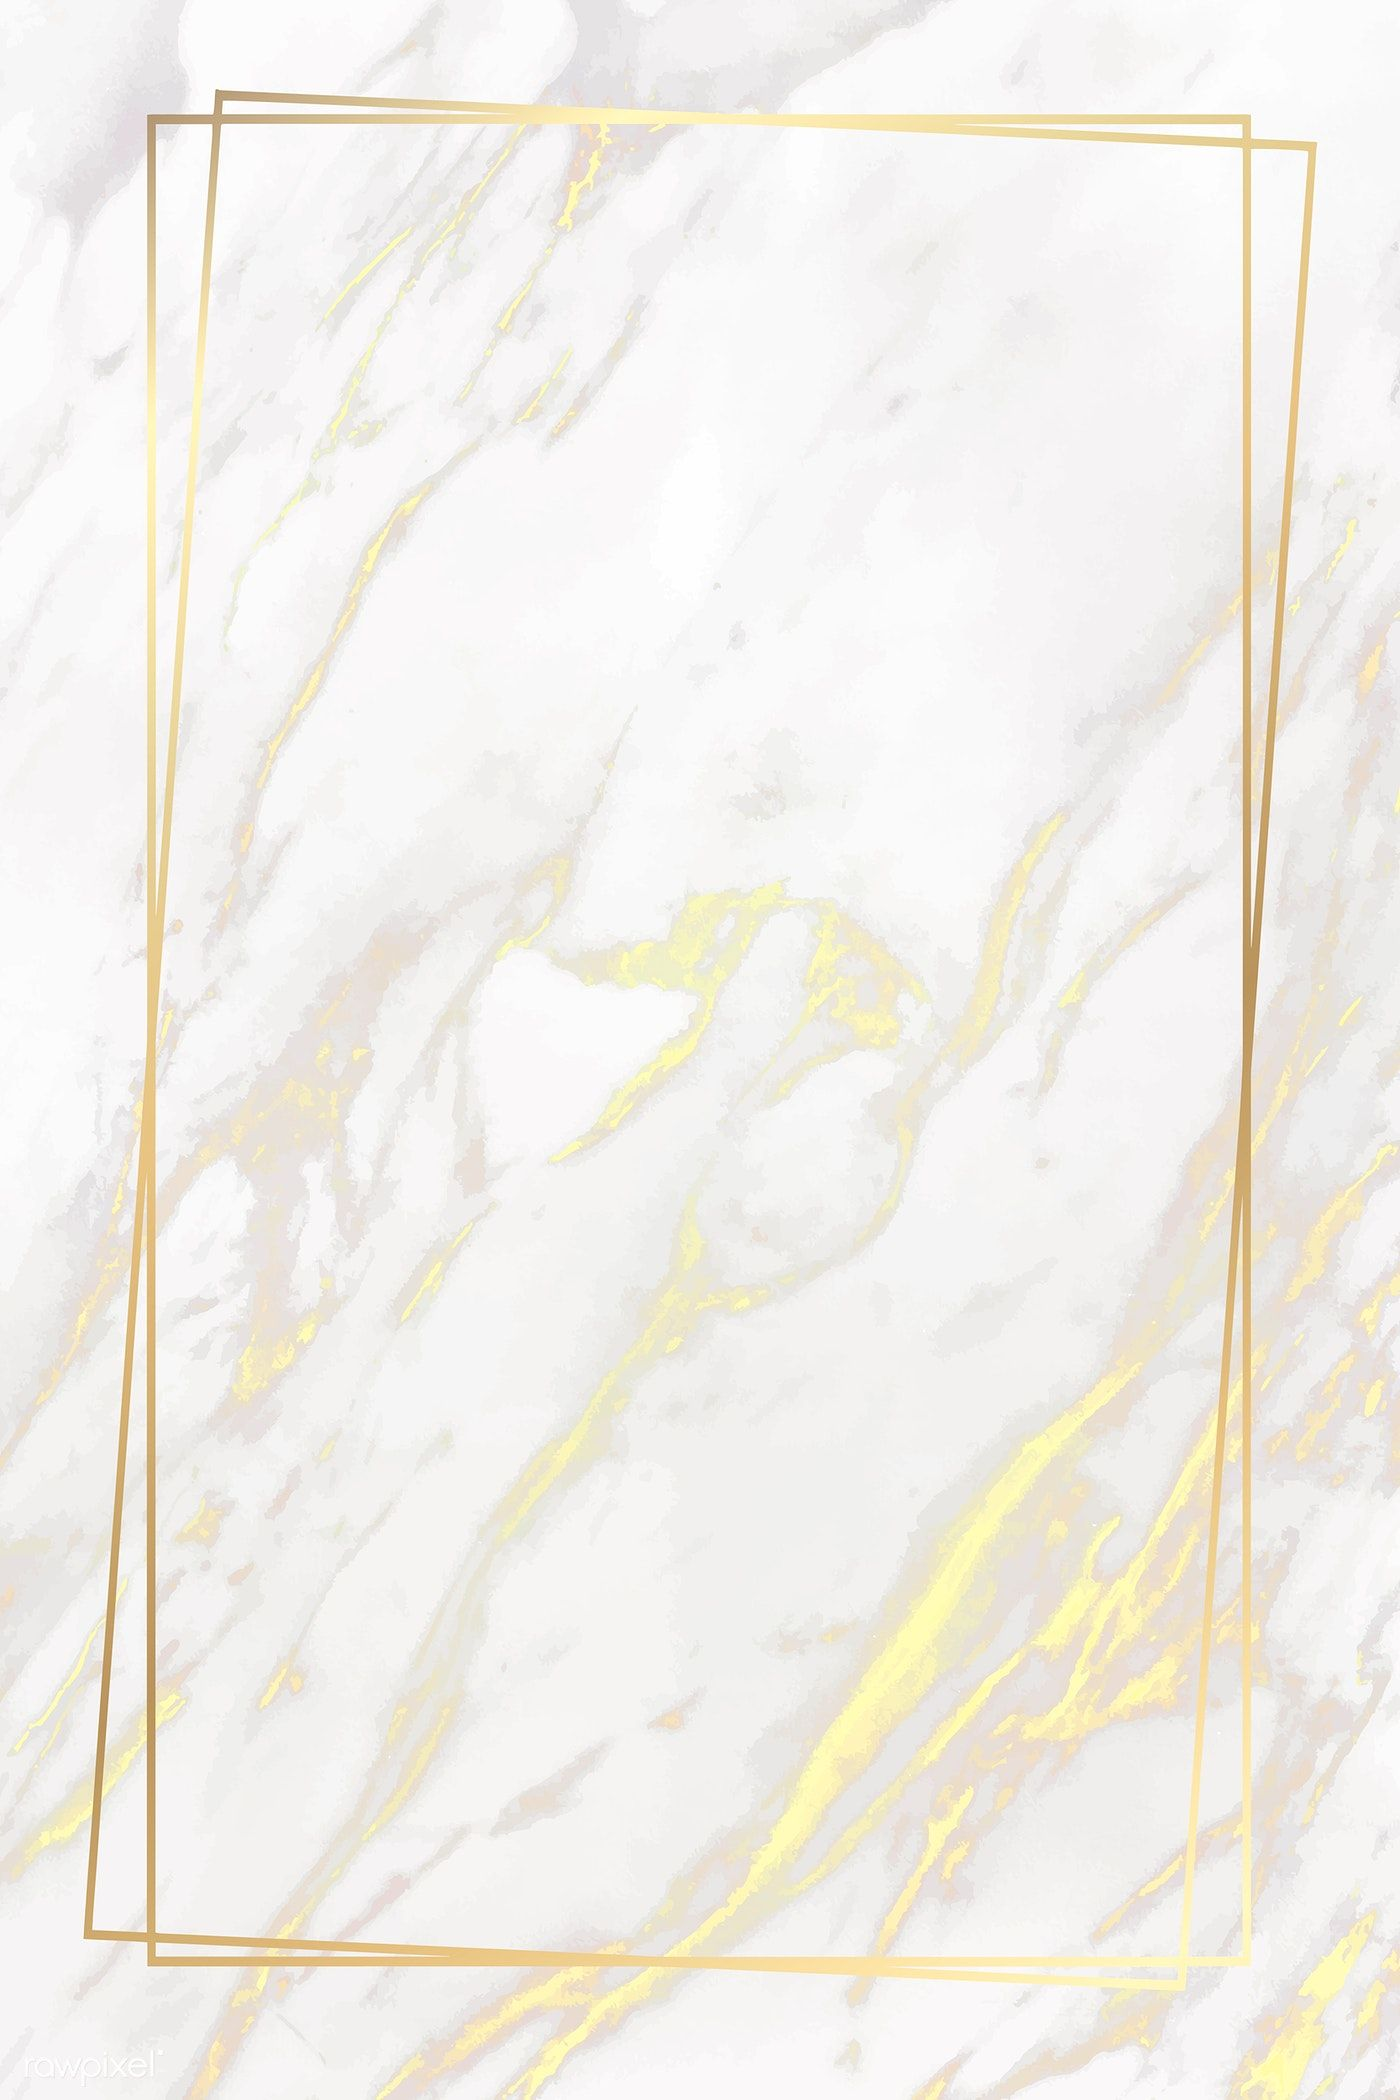 Rectangle Golden Frame On A Marble Background Vector Premium Image By Rawpixel Com Adj Hwangma Marble Background Framed Wallpaper Marble Iphone Wallpaper Aesthetic background wallpaper golden